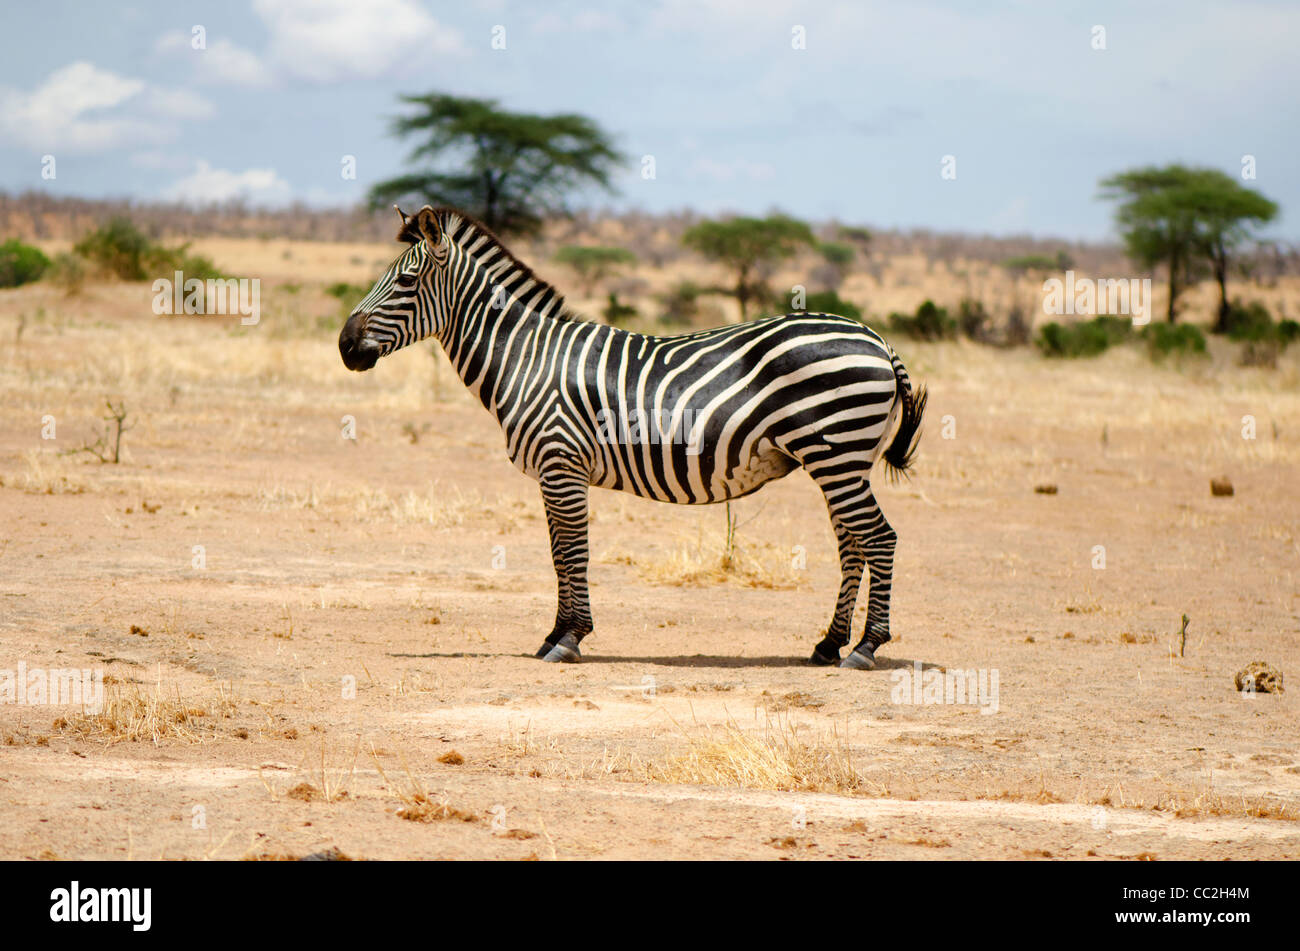 Zebra in the Ruaha National Park, Tanzania - Stock Image